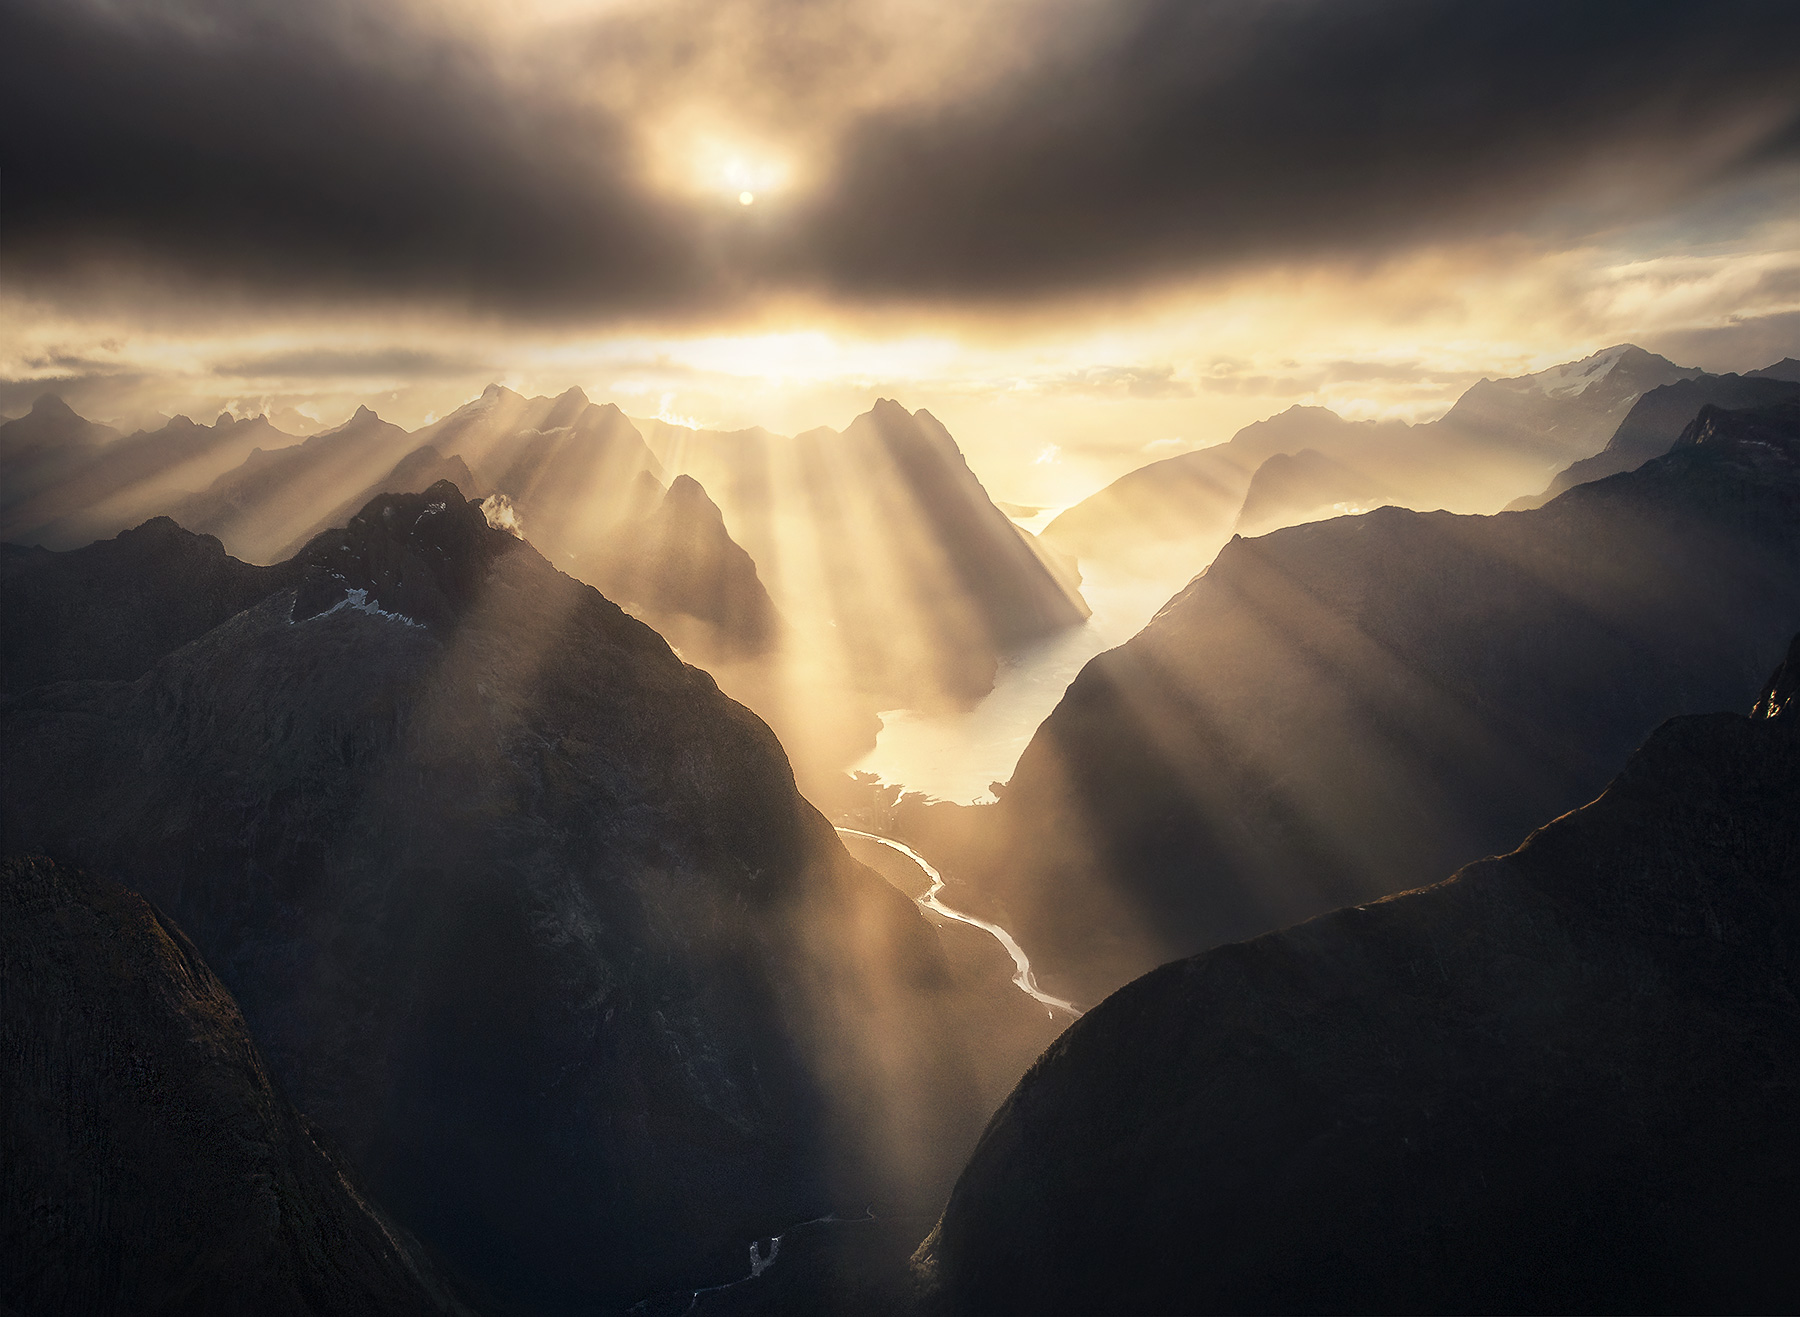 aerial, Milford sound, New Zealand, beams, sunlight, photo